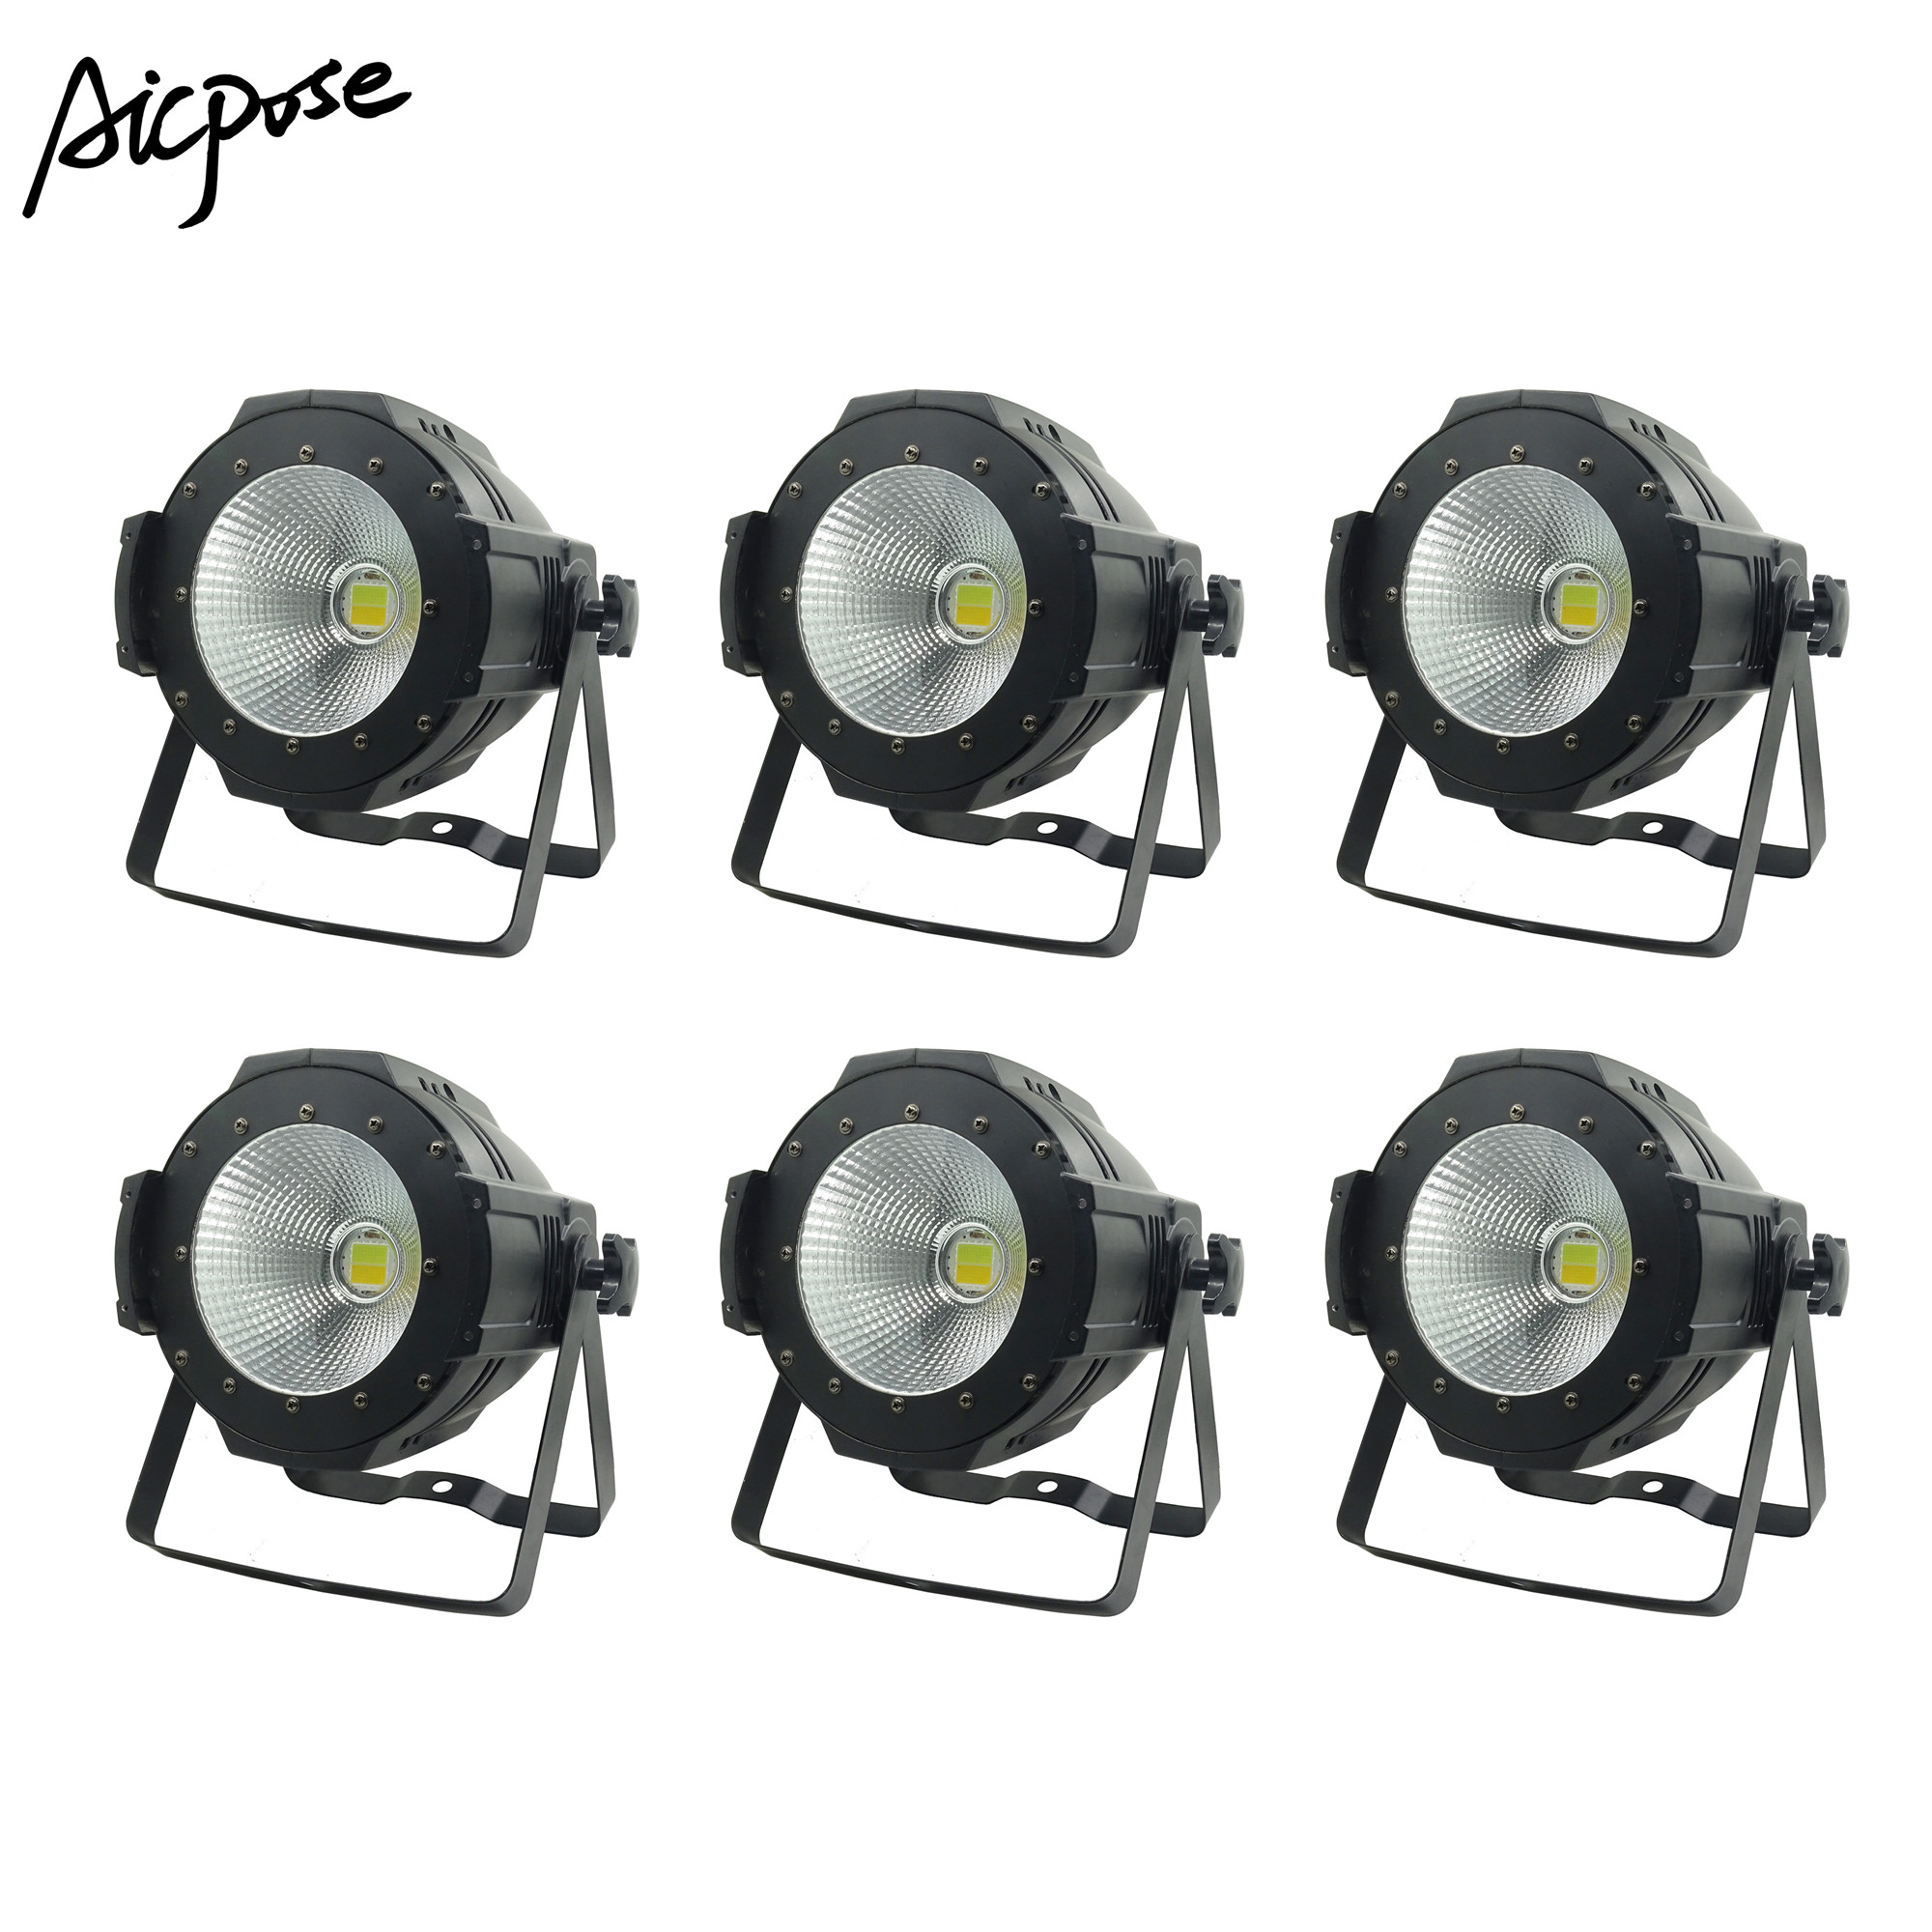 LED Par  COB Light 100W High Power Aluminium DJ DMX Led Beam Wash Strobe Effect Stage Lighting,Cool White and Warm WhiteLED Par  COB Light 100W High Power Aluminium DJ DMX Led Beam Wash Strobe Effect Stage Lighting,Cool White and Warm White